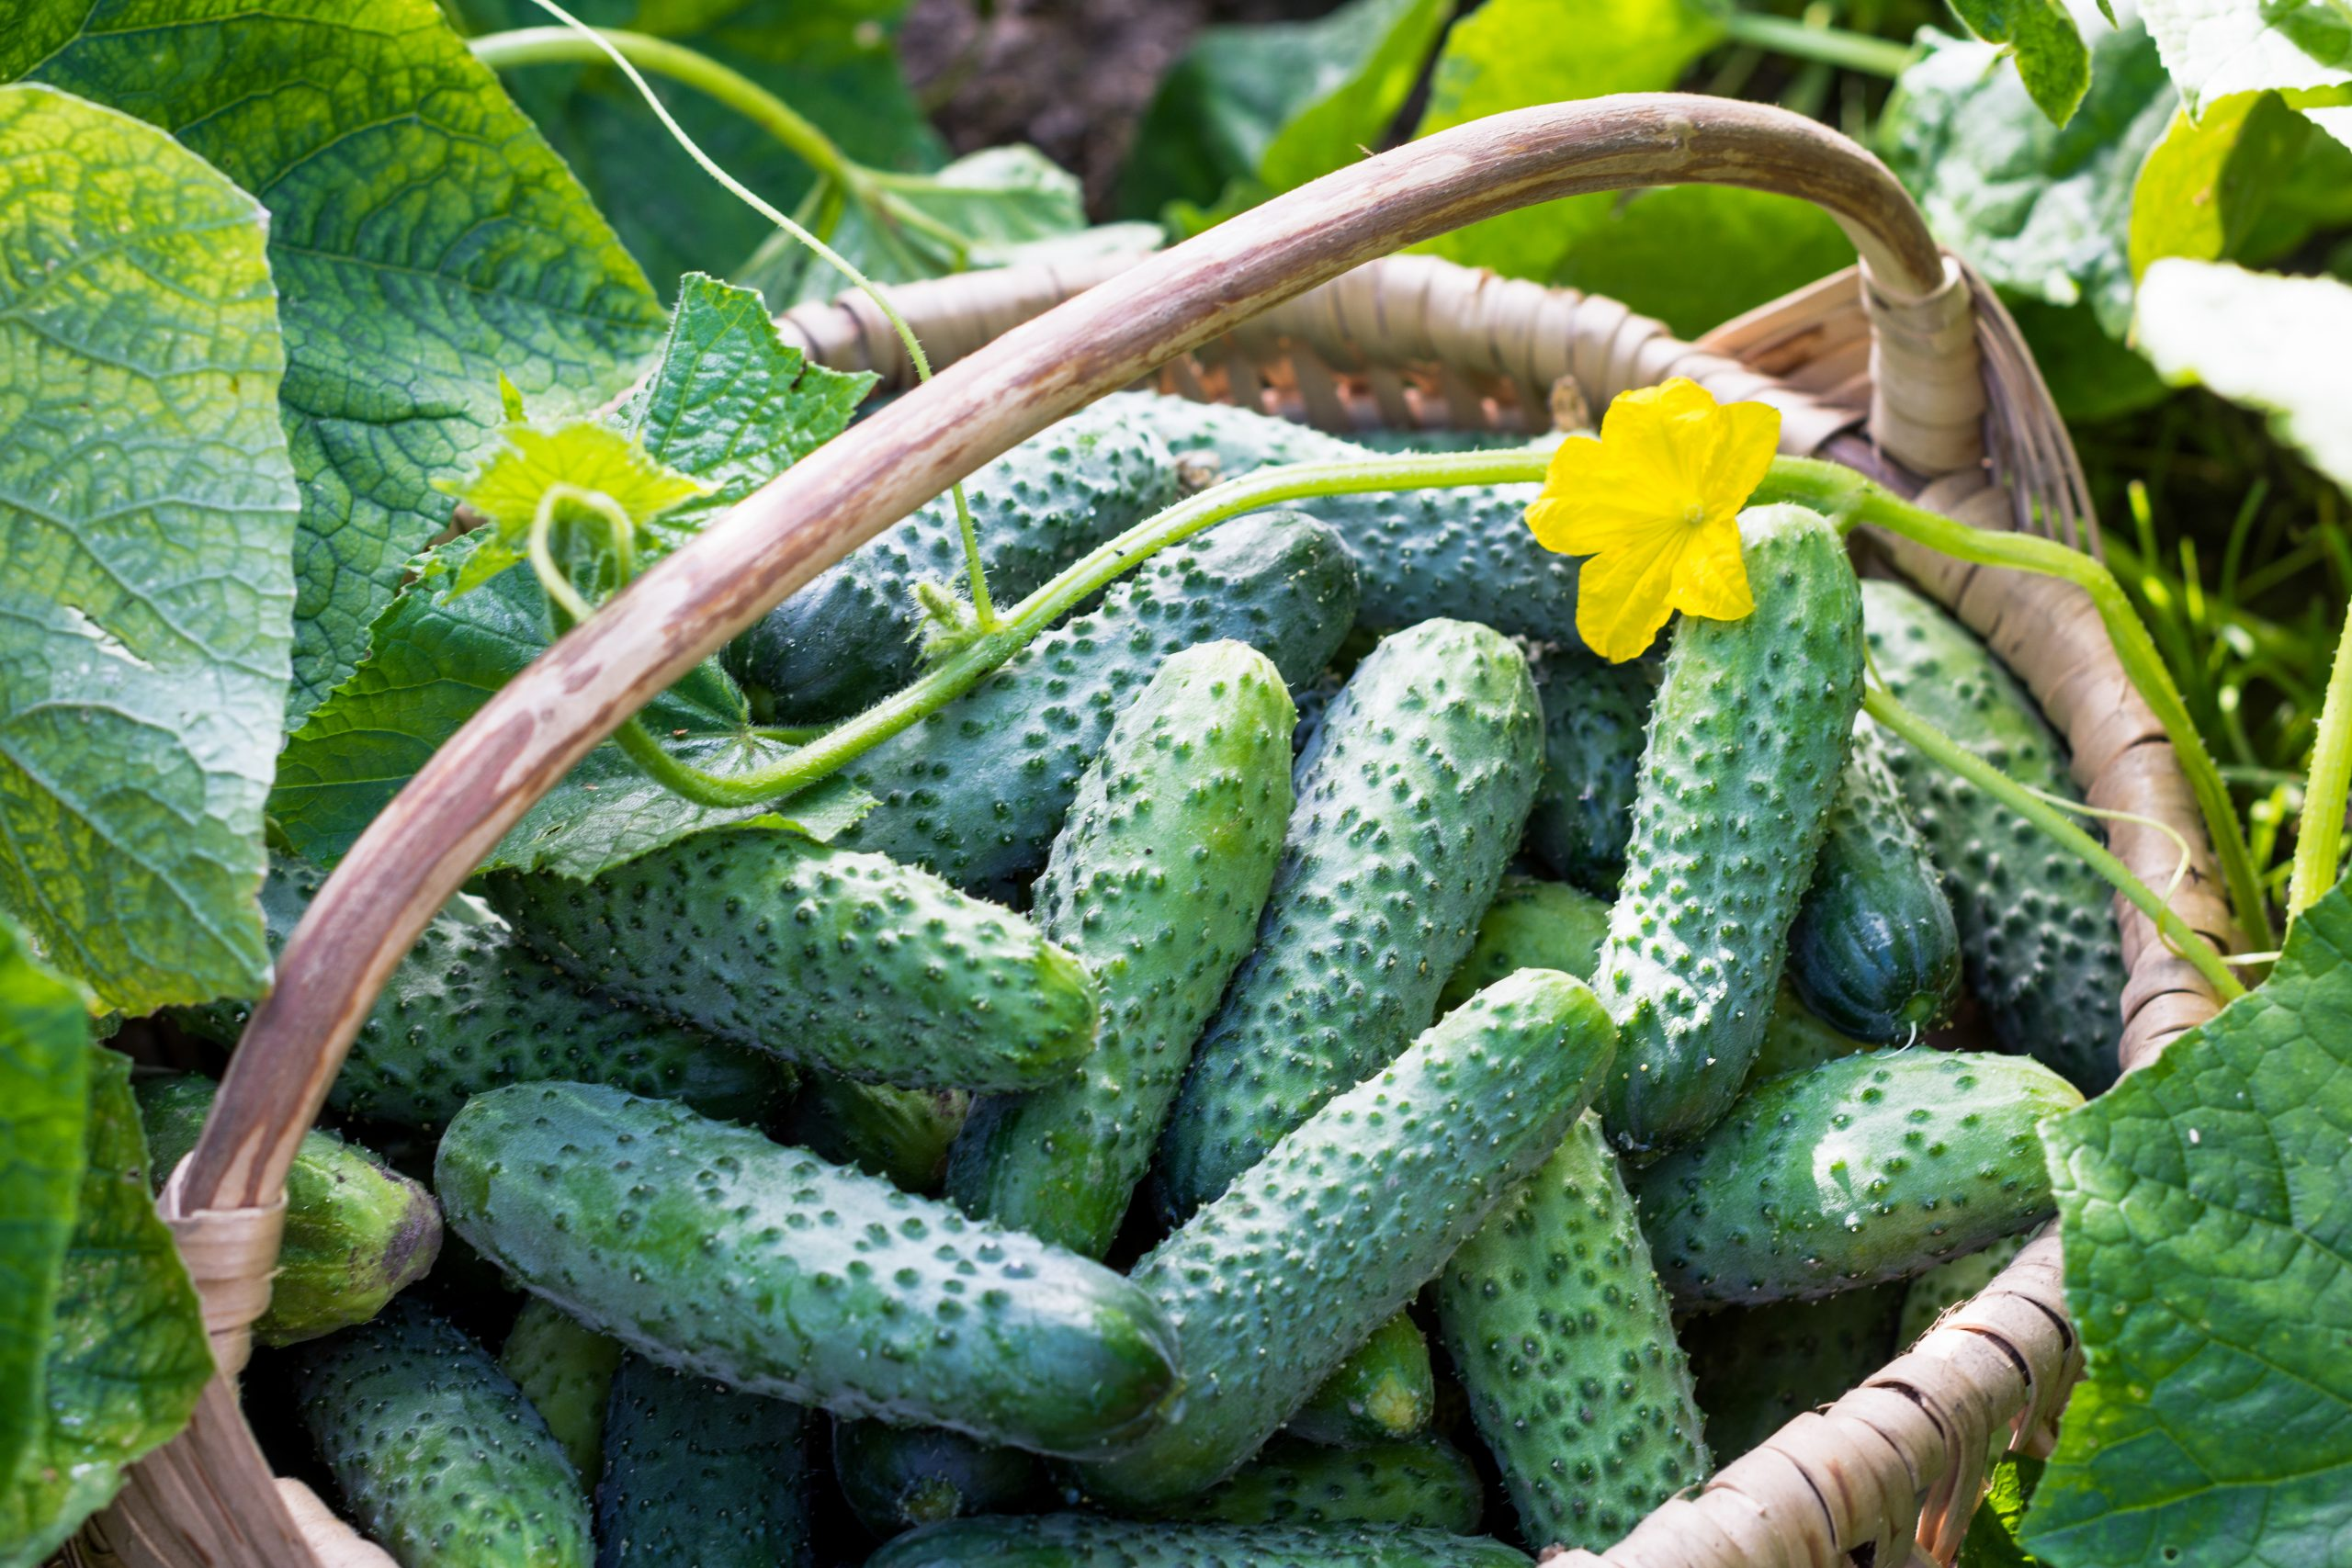 15 of the Most Popular Types of Cucumbers to Grow